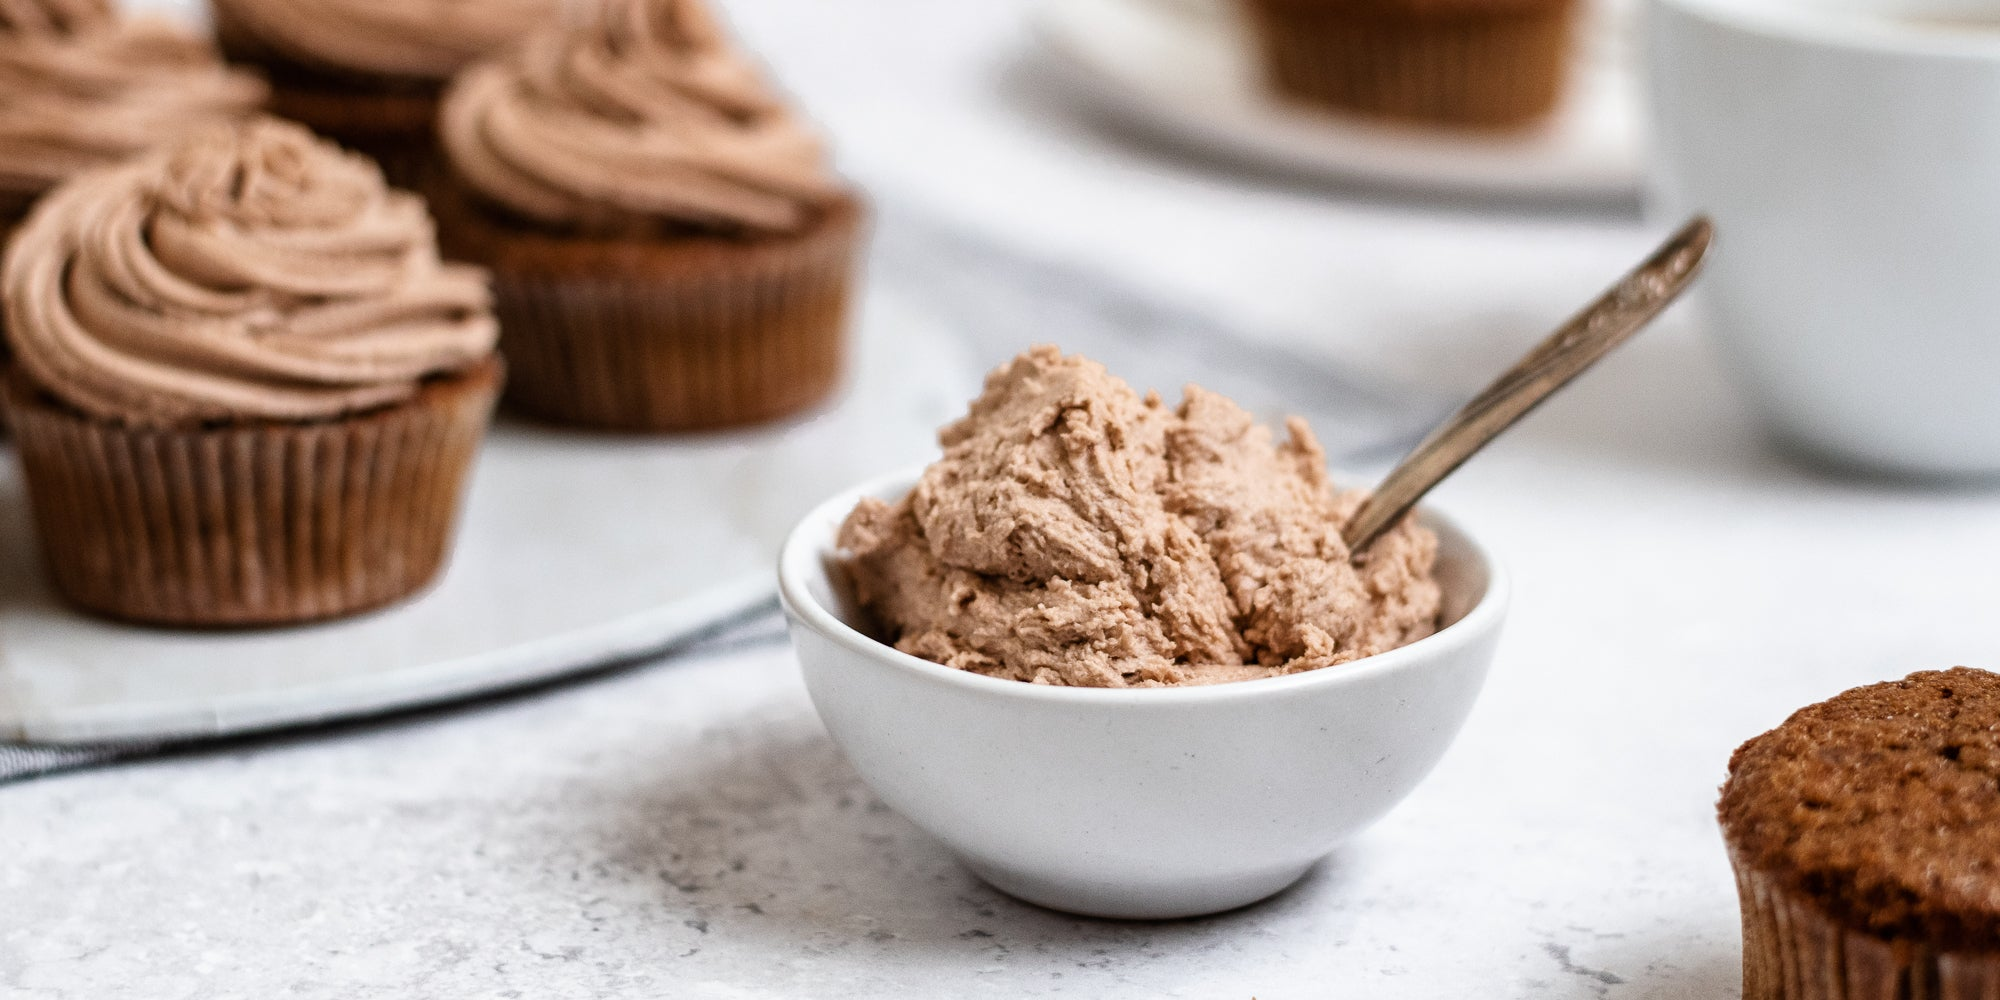 Close up of Dairy Free Vegan Chocolate Buttercream in a small bowl, with a spoon. Cupcakes topped with Dairy Free Vegan Chocolate Buttercream in the background